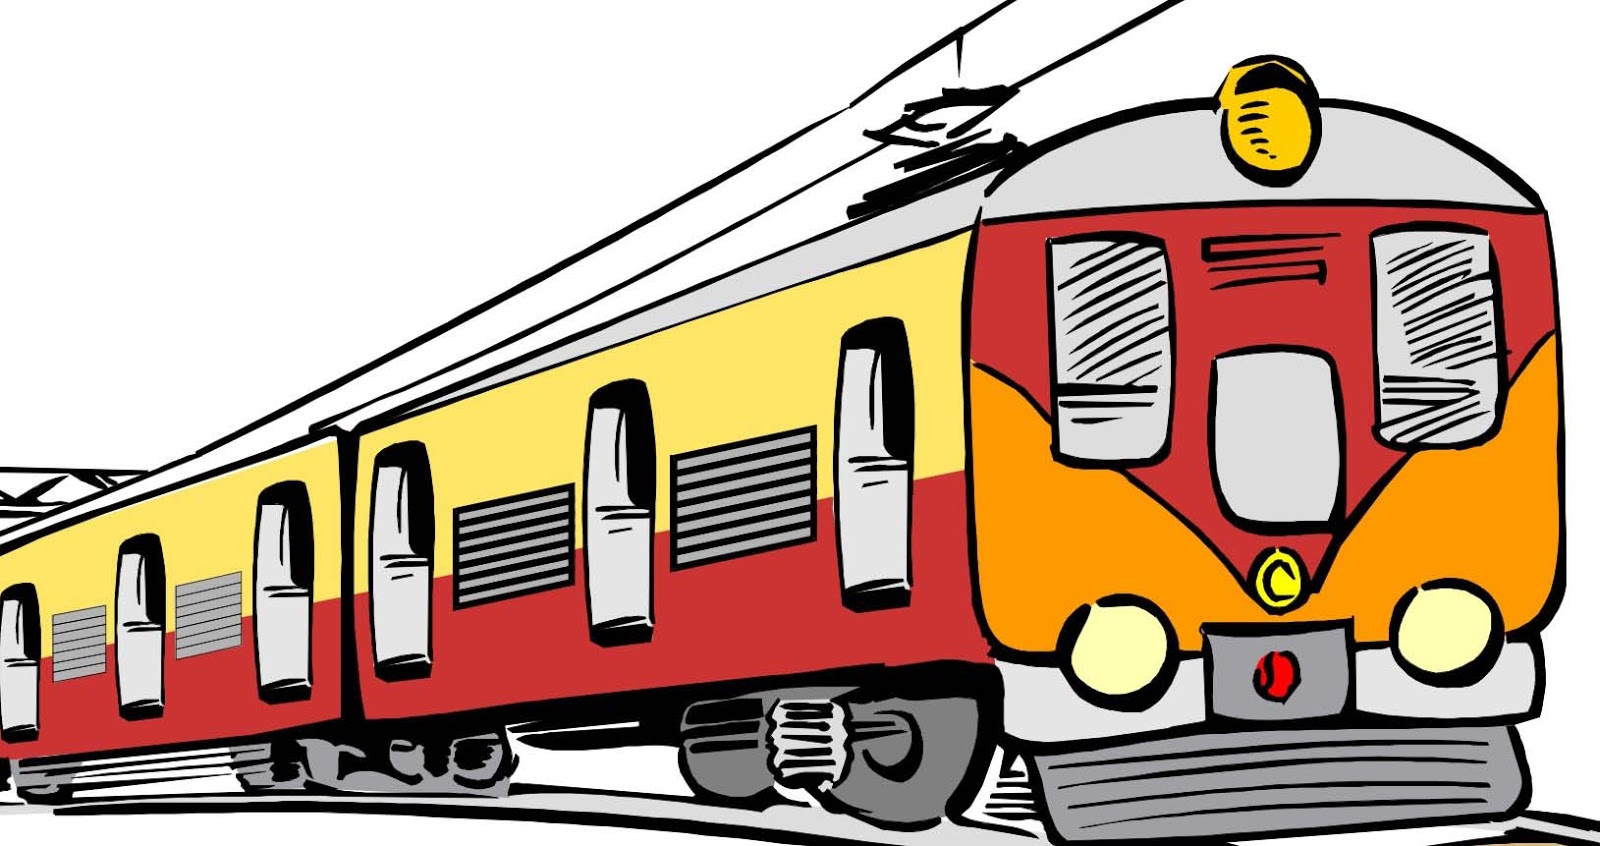 Railways clipart cartoon #1